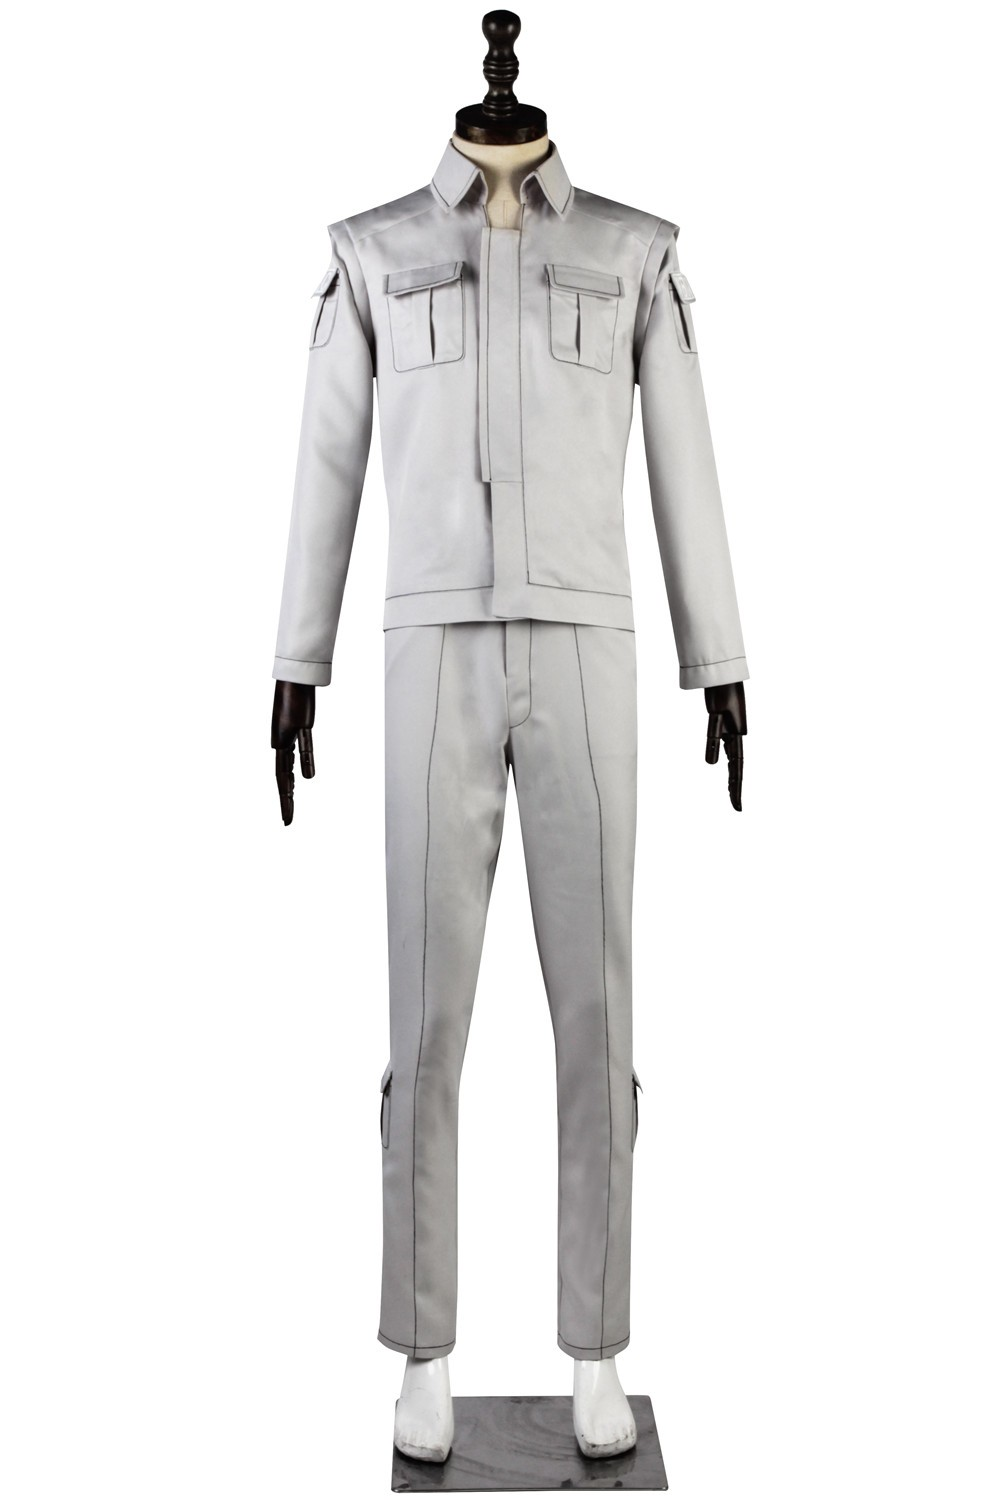 Cosplay Costume Anime Cells At Work White Blood Cell Halloween Outfit Uniform